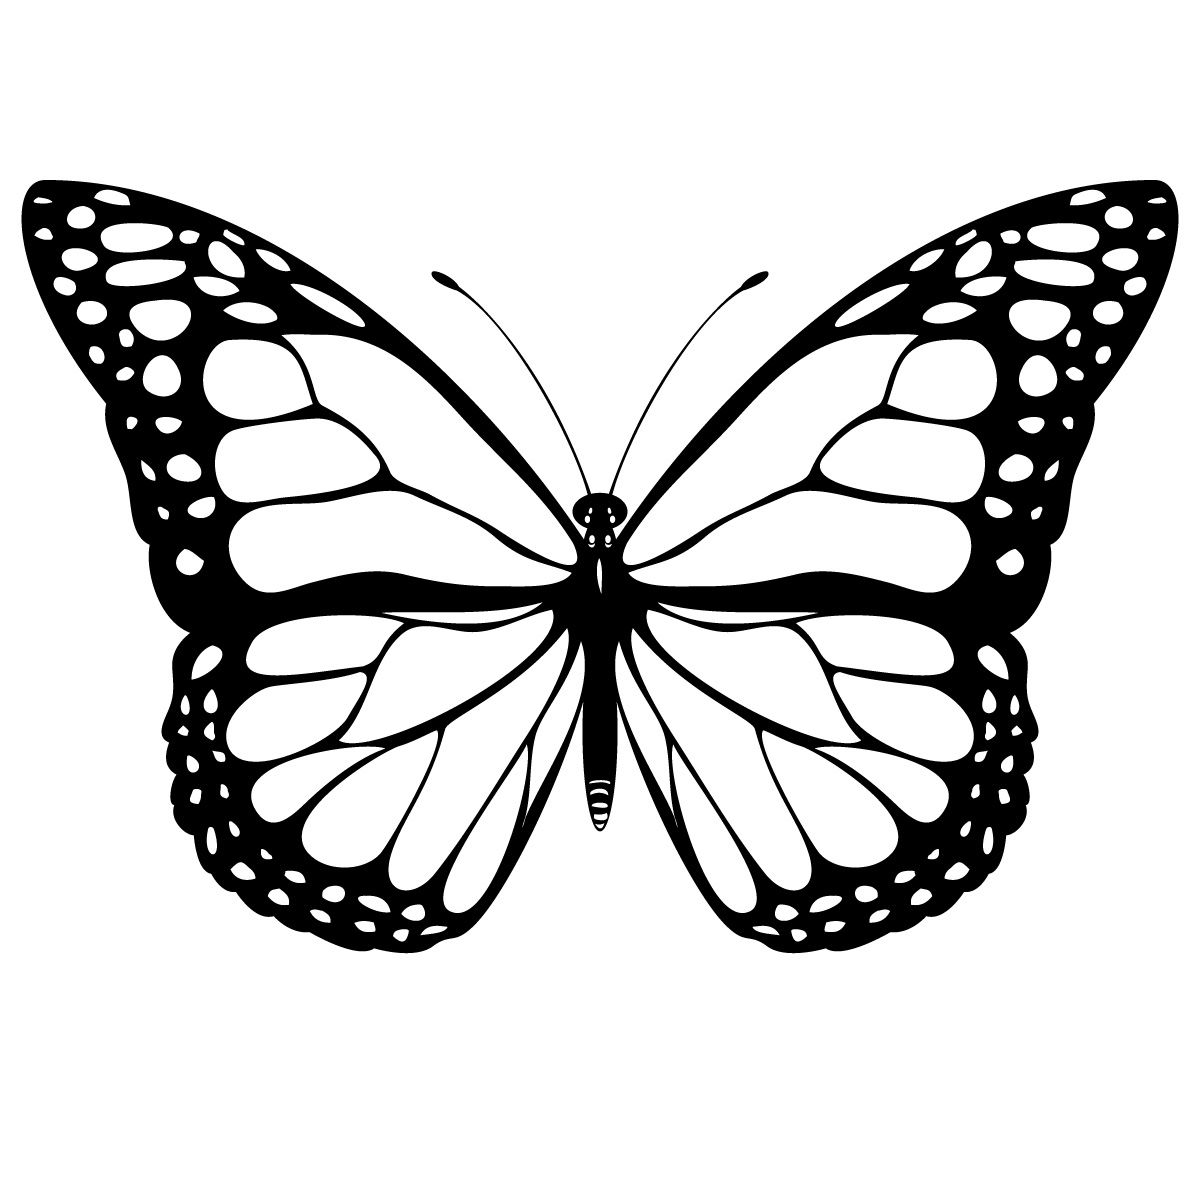 Colouring in pages for girls butterflies - If You Are Located In The Cleveland Area And Looking For Butterfly Template Printable